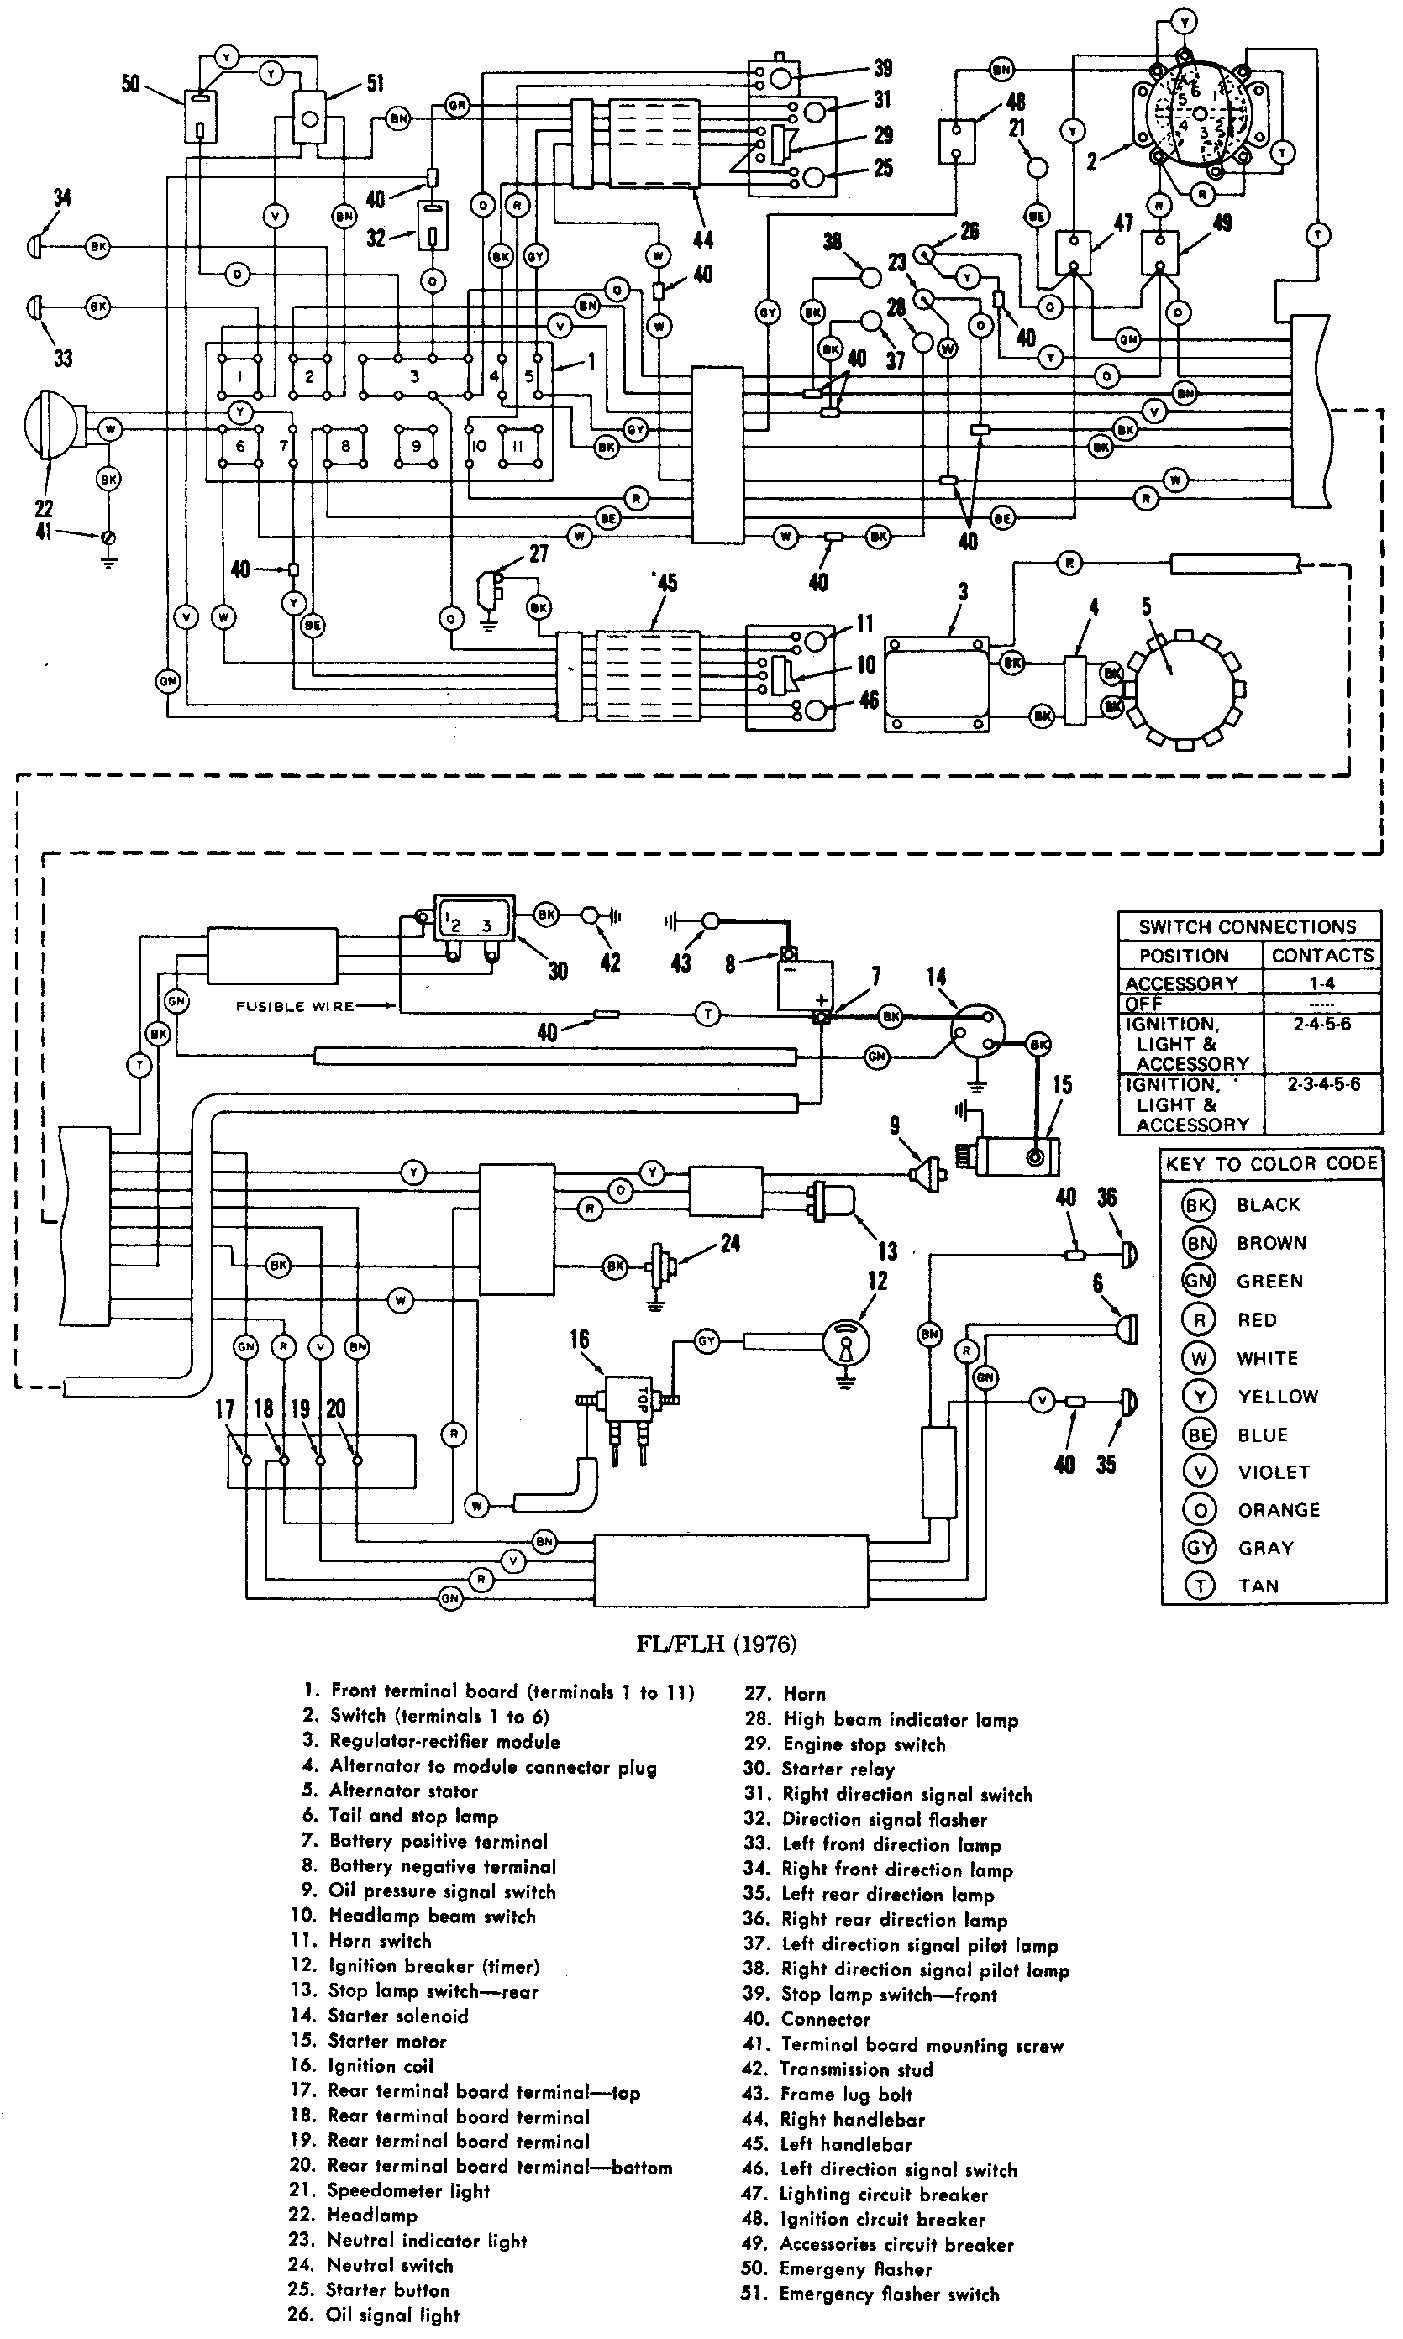 1984 Sportster Wiring Diagram Manual Guide